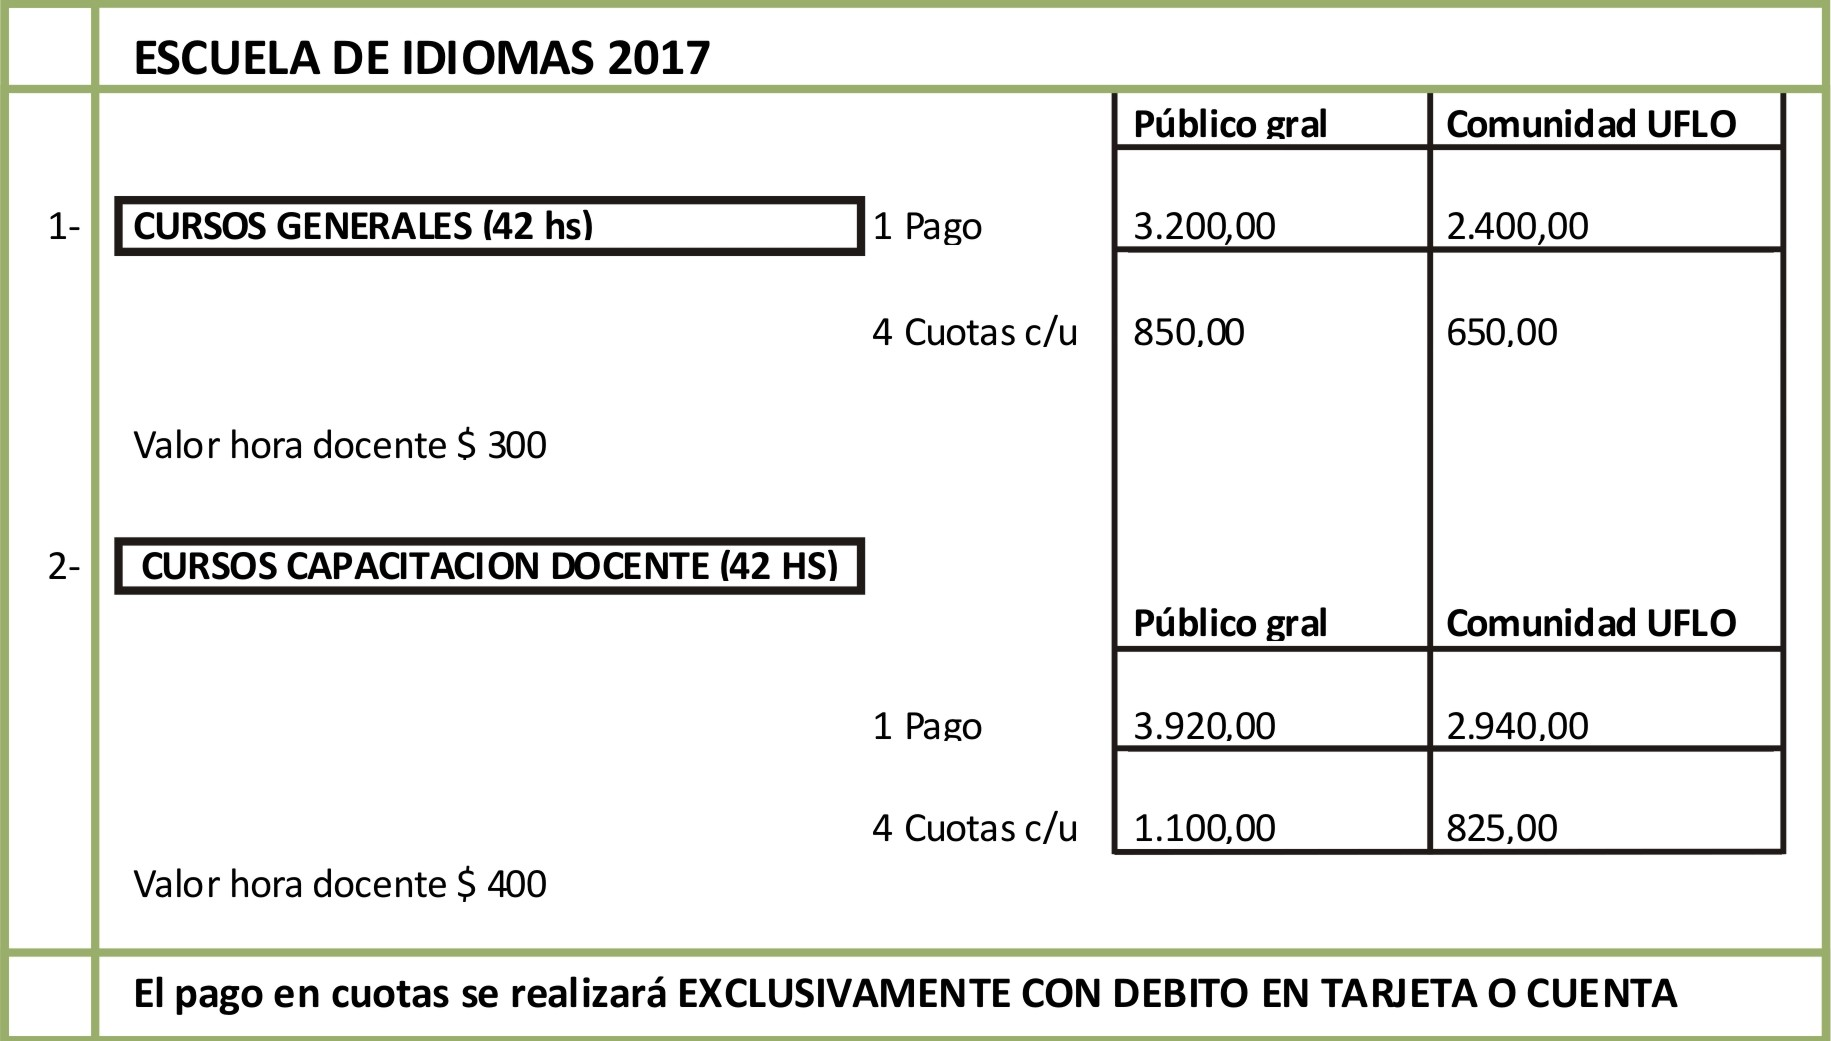 http://www.uflo.edu.ar/files/extensiones/valores2017.jpg